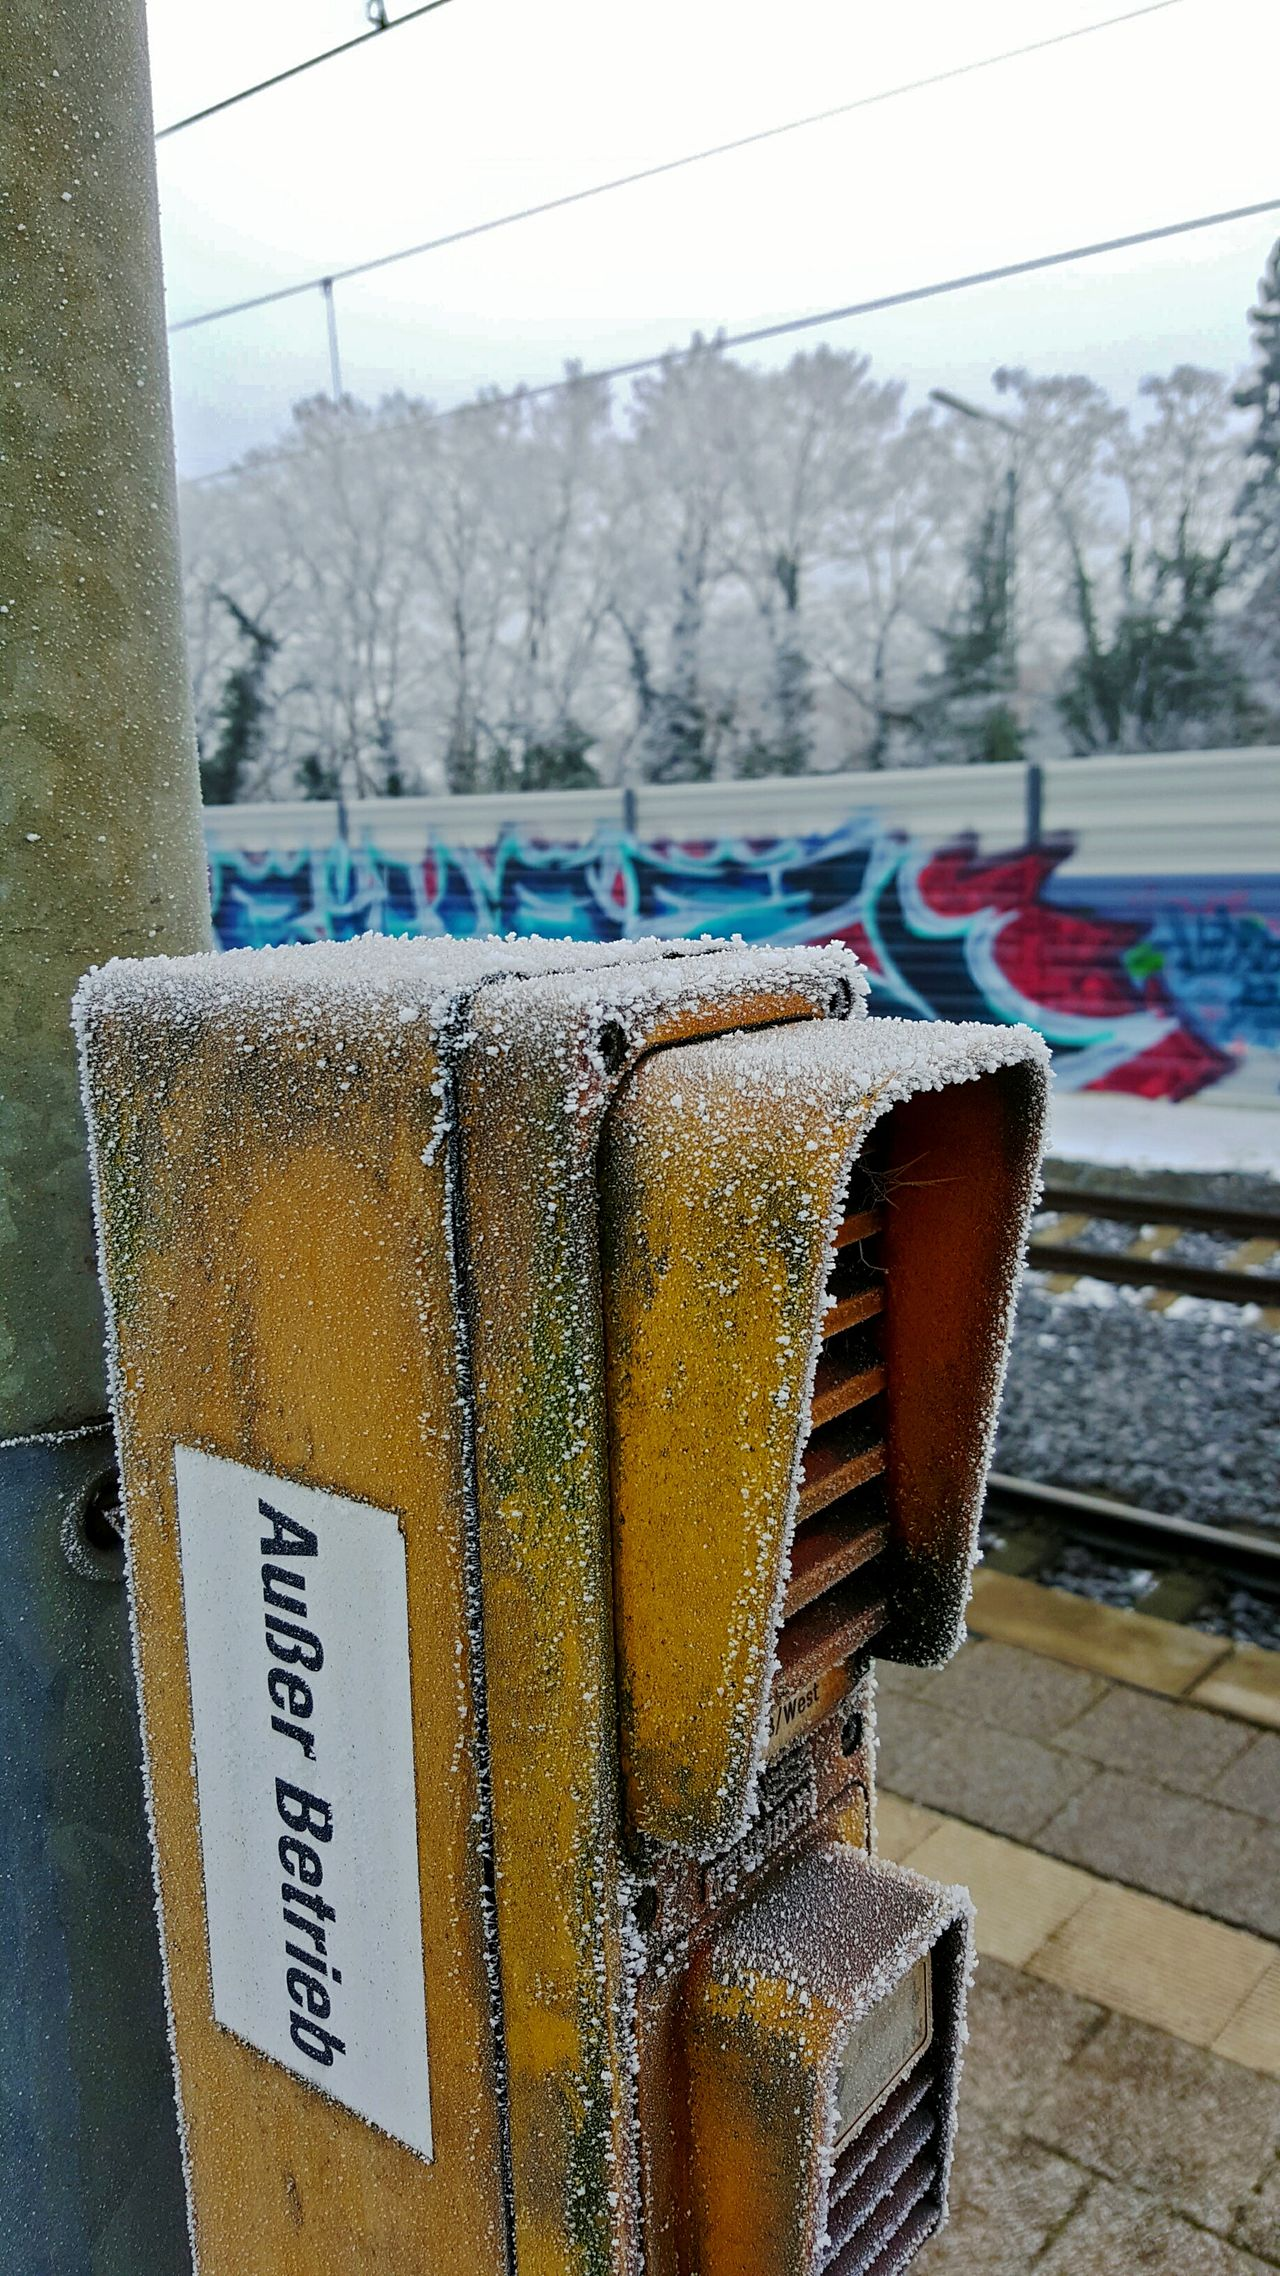 Call Comunication Obsolete Frost Old Telephone Train Station Cold Days Cold Outdoors Snow Graffiti Urbanphotography Streetphotography Objects Outoforder Wintertime Notavailable Information Sign Information Trees Railroad Rails PhonePhotography Phone